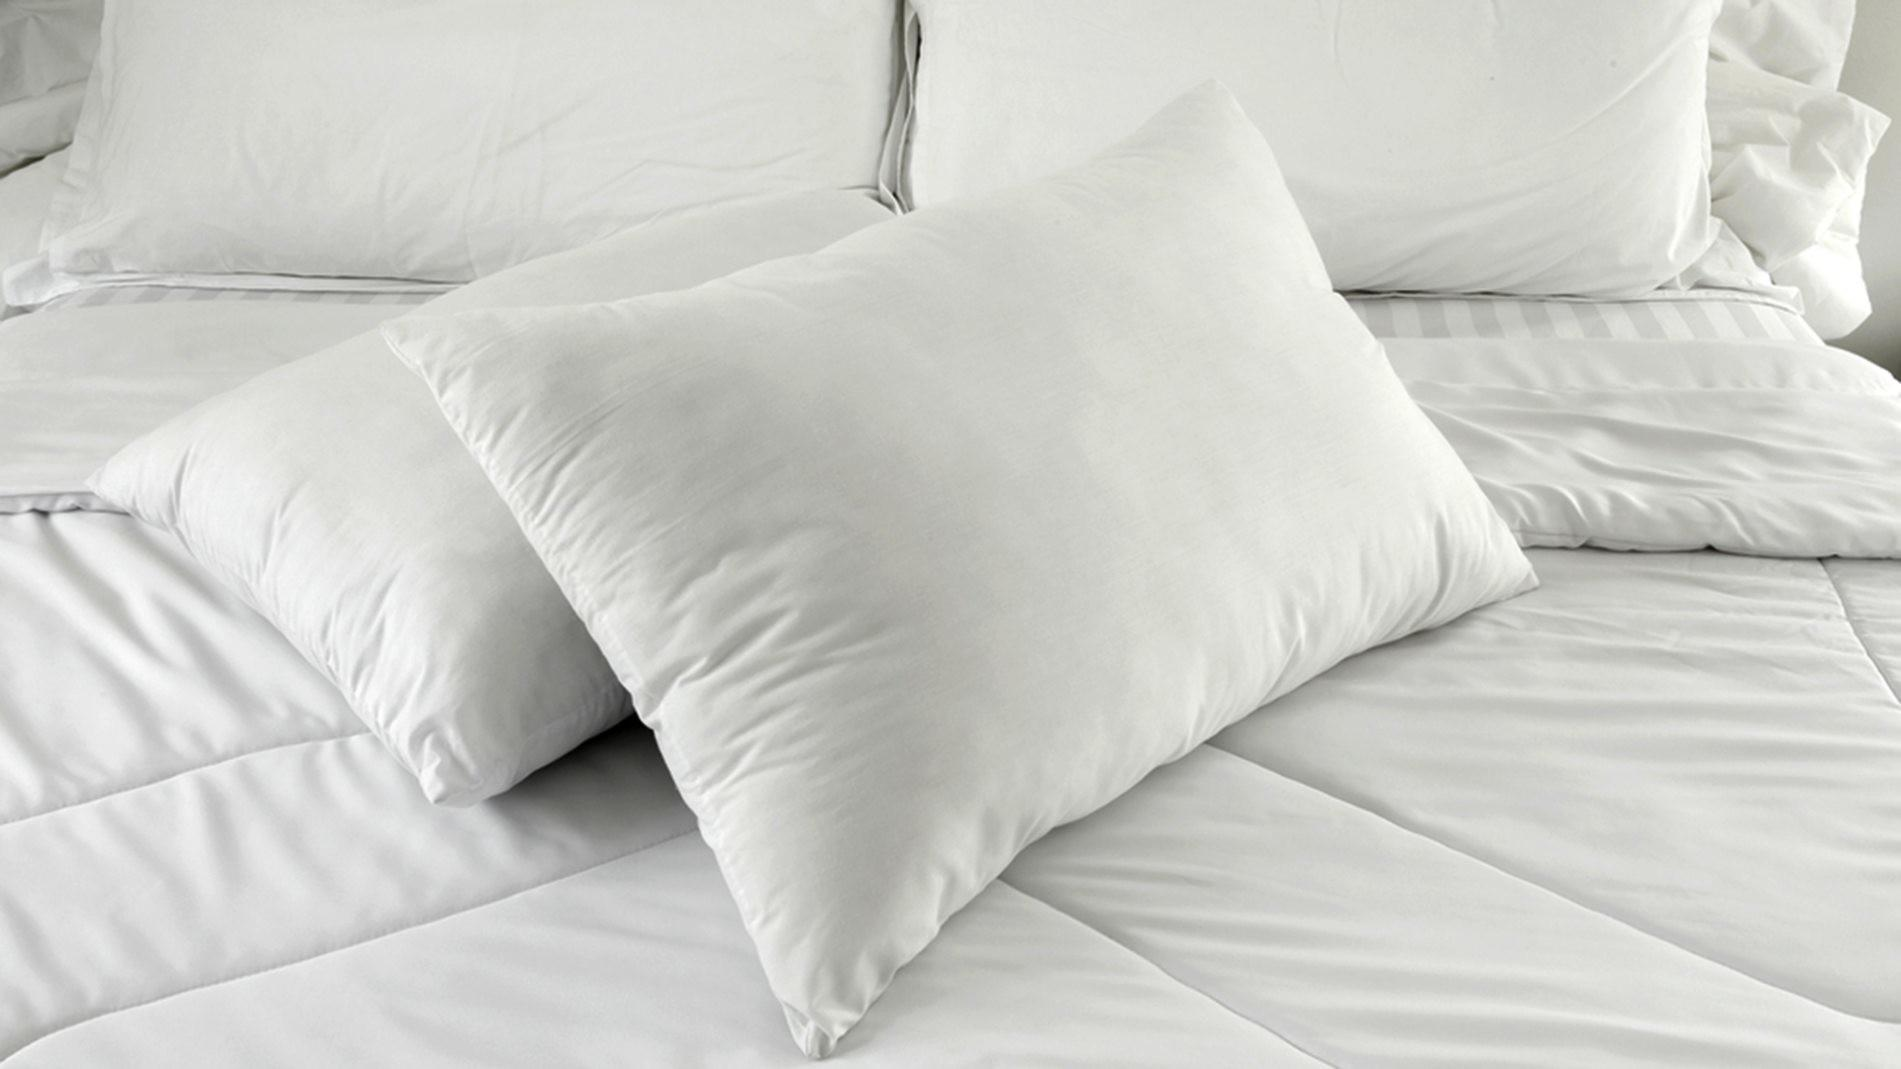 Clean Pillows Today Can Wash Your